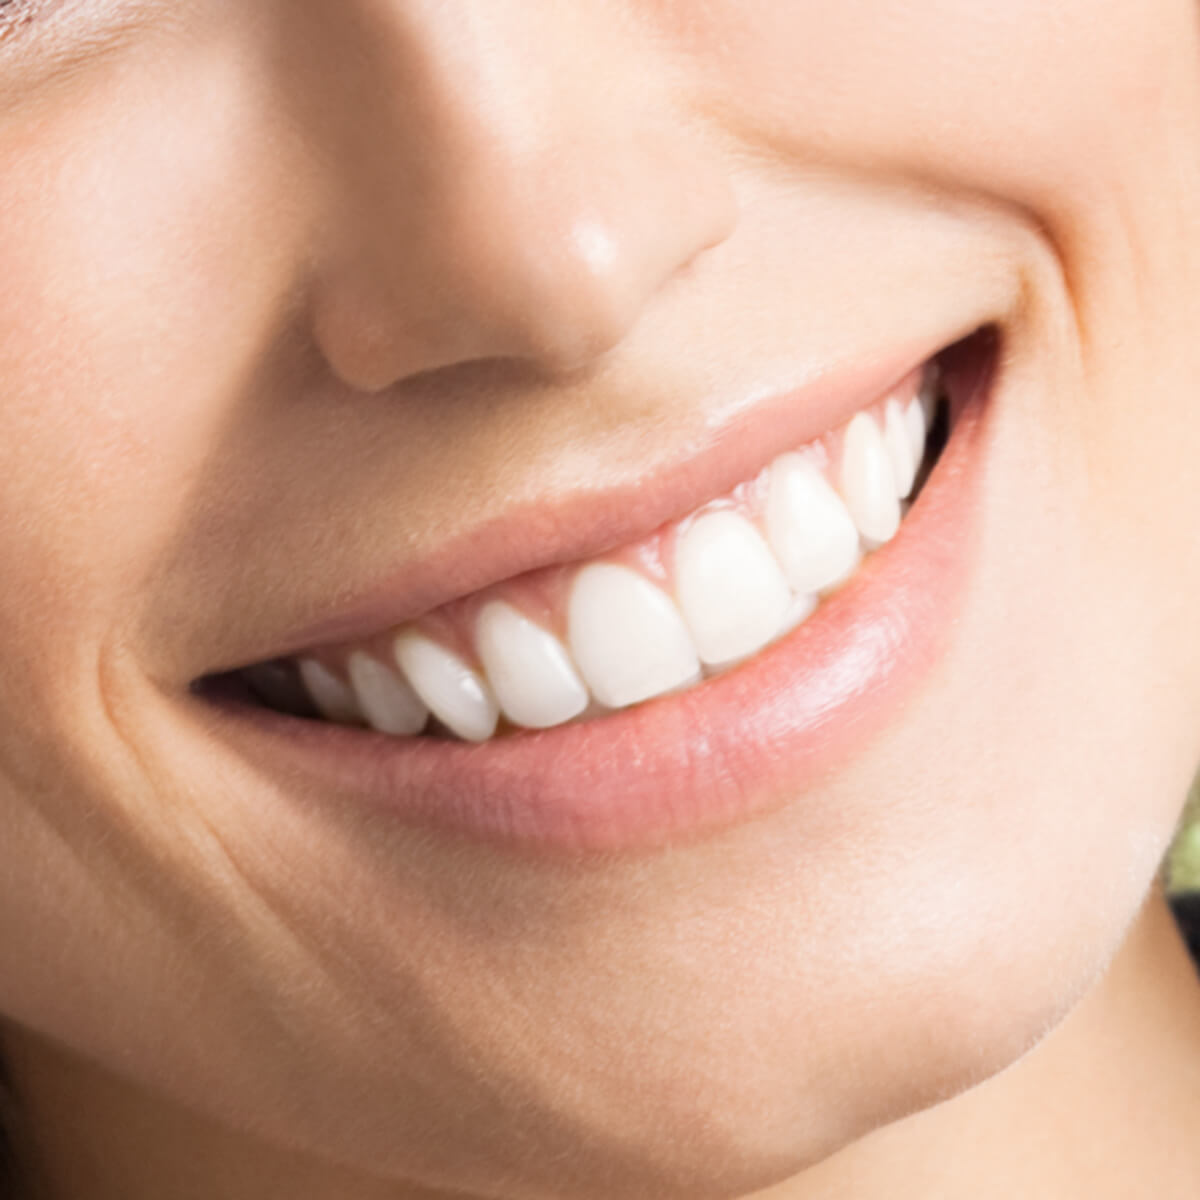 What Does Getting Veneers with a dentist in El Dorado AR Area Involve?